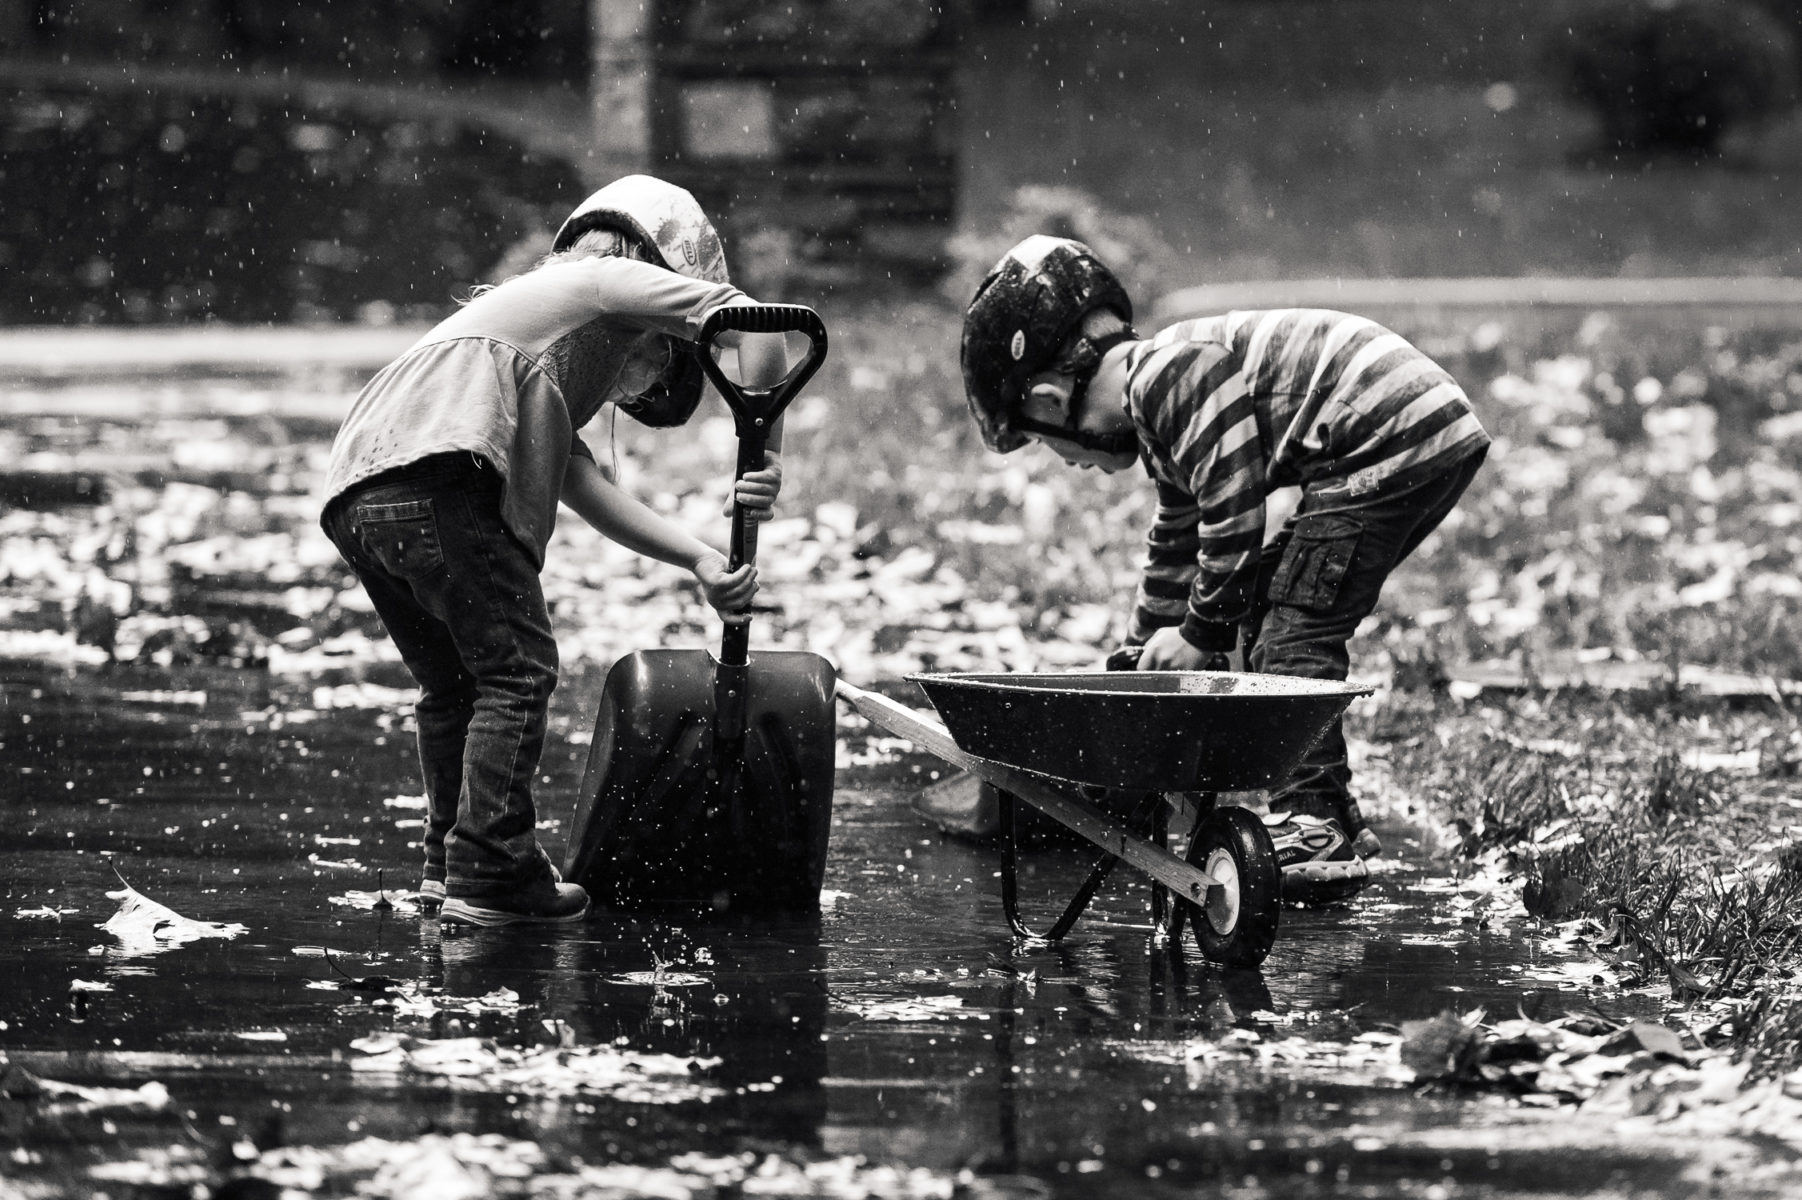 brother and sister shoveling rain into a wheelbarrow